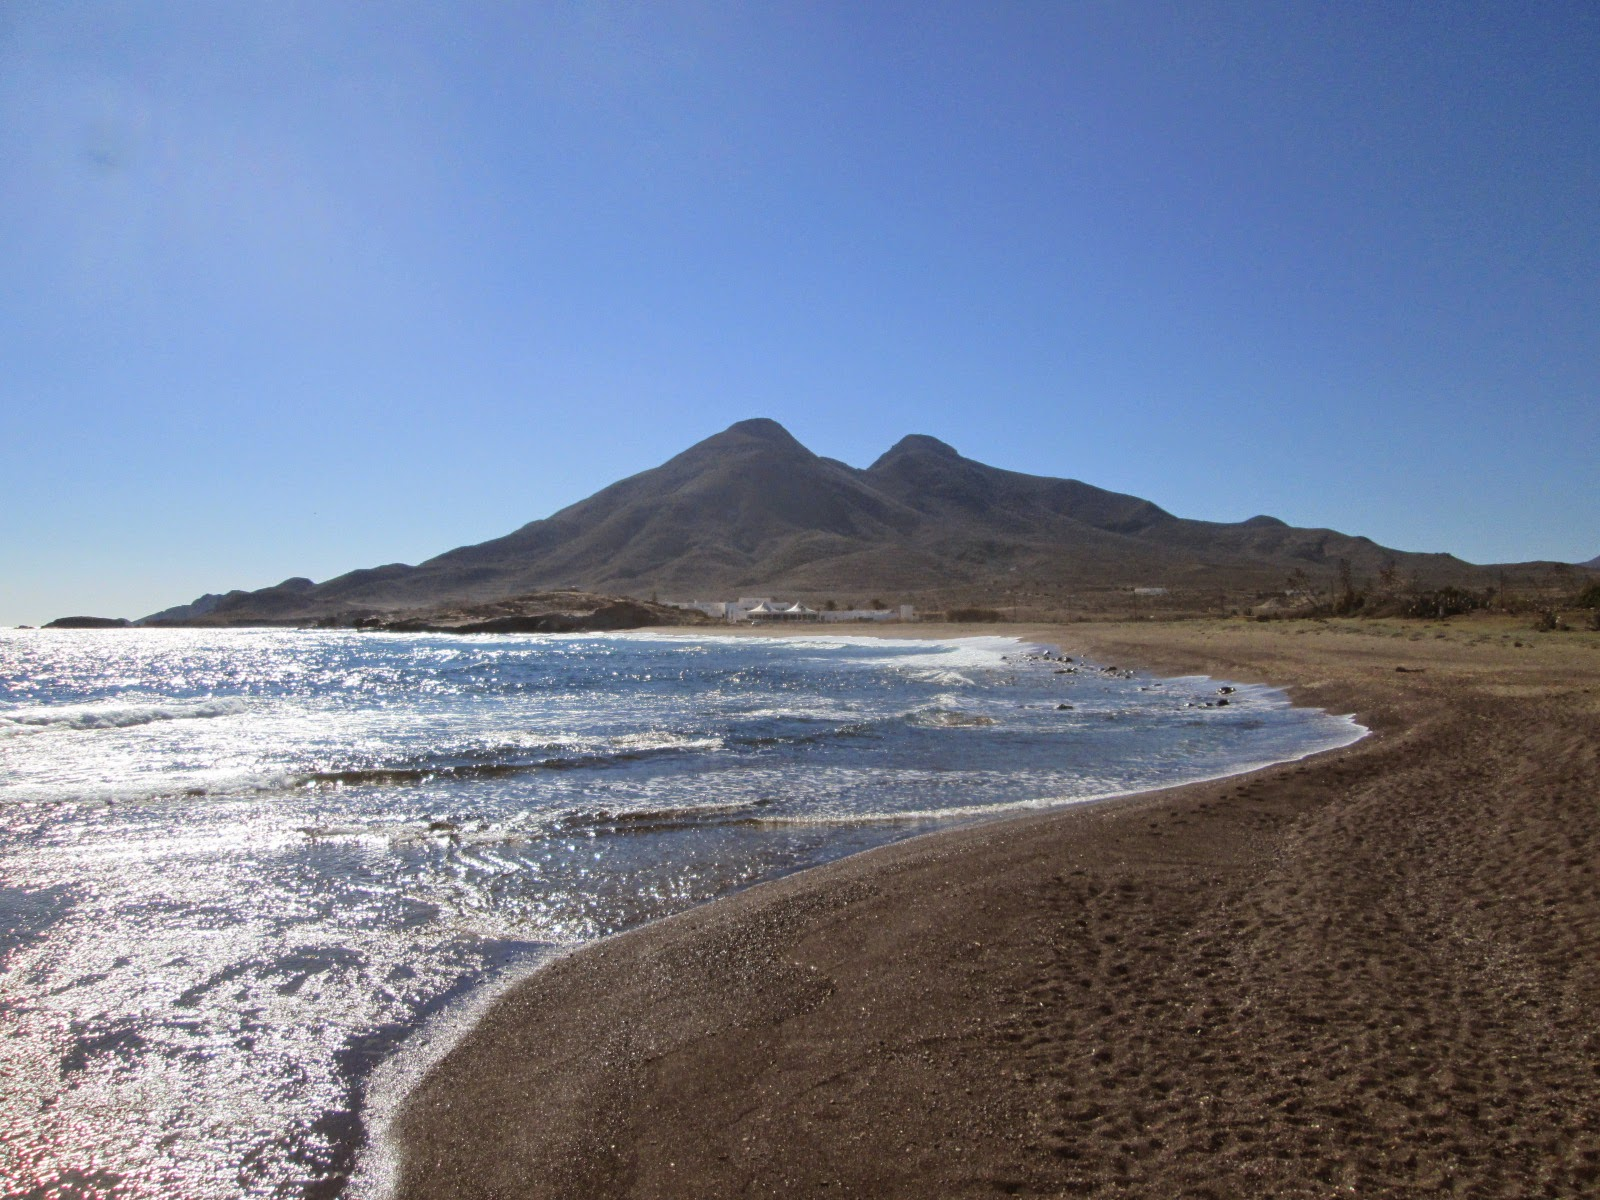 Looking back along Playa del Arco to El Frailes